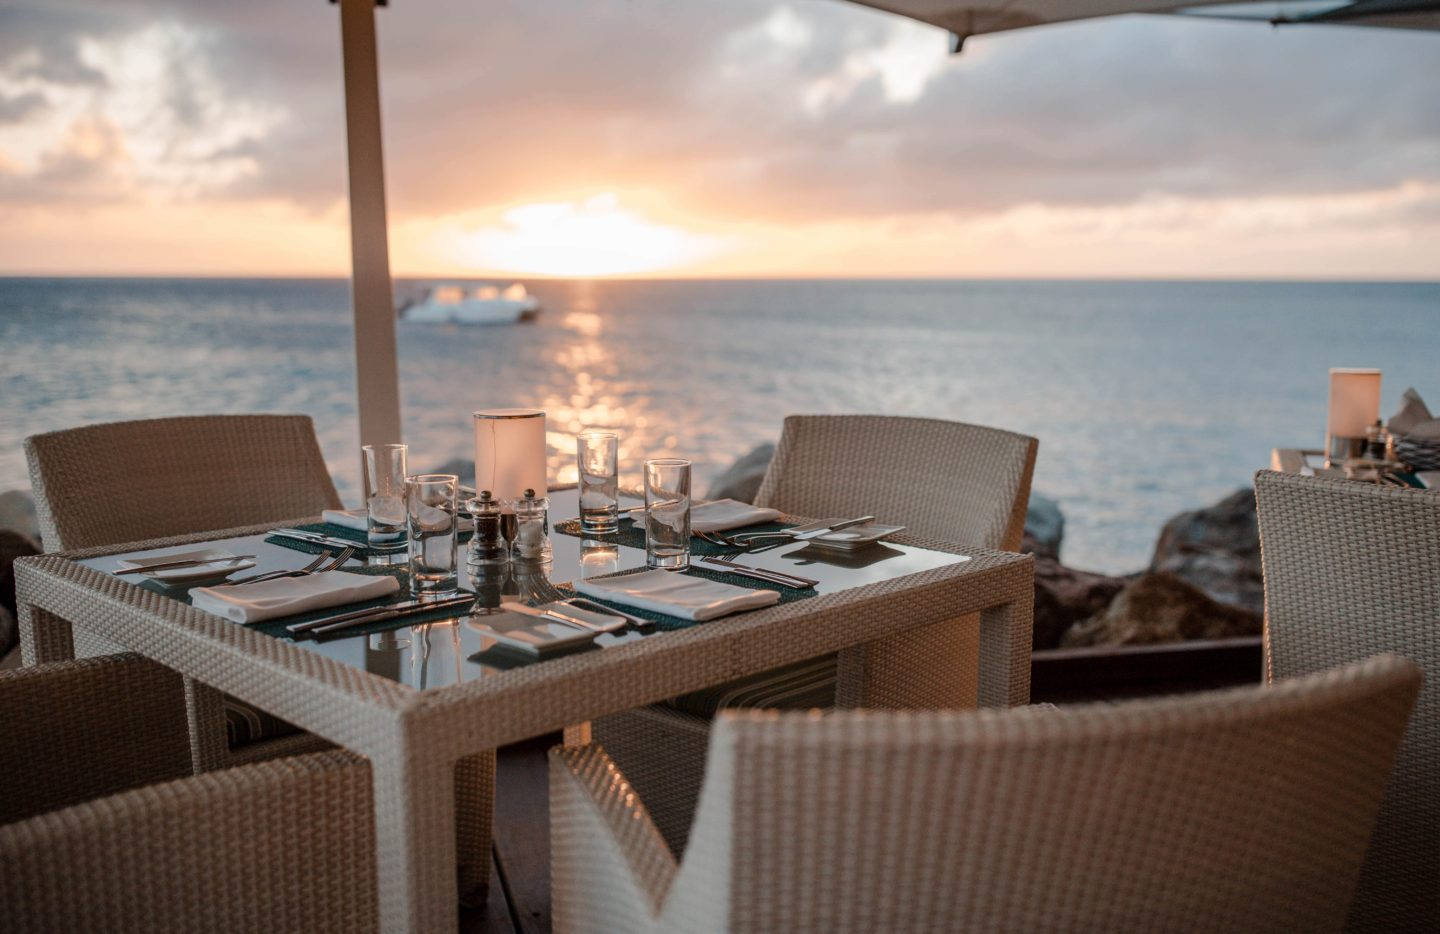 Where to Stay in the Caribbean Four Seasons Nevis in St. Kitts and Nevis | Luxury Caribbean Resort - Dana Berez